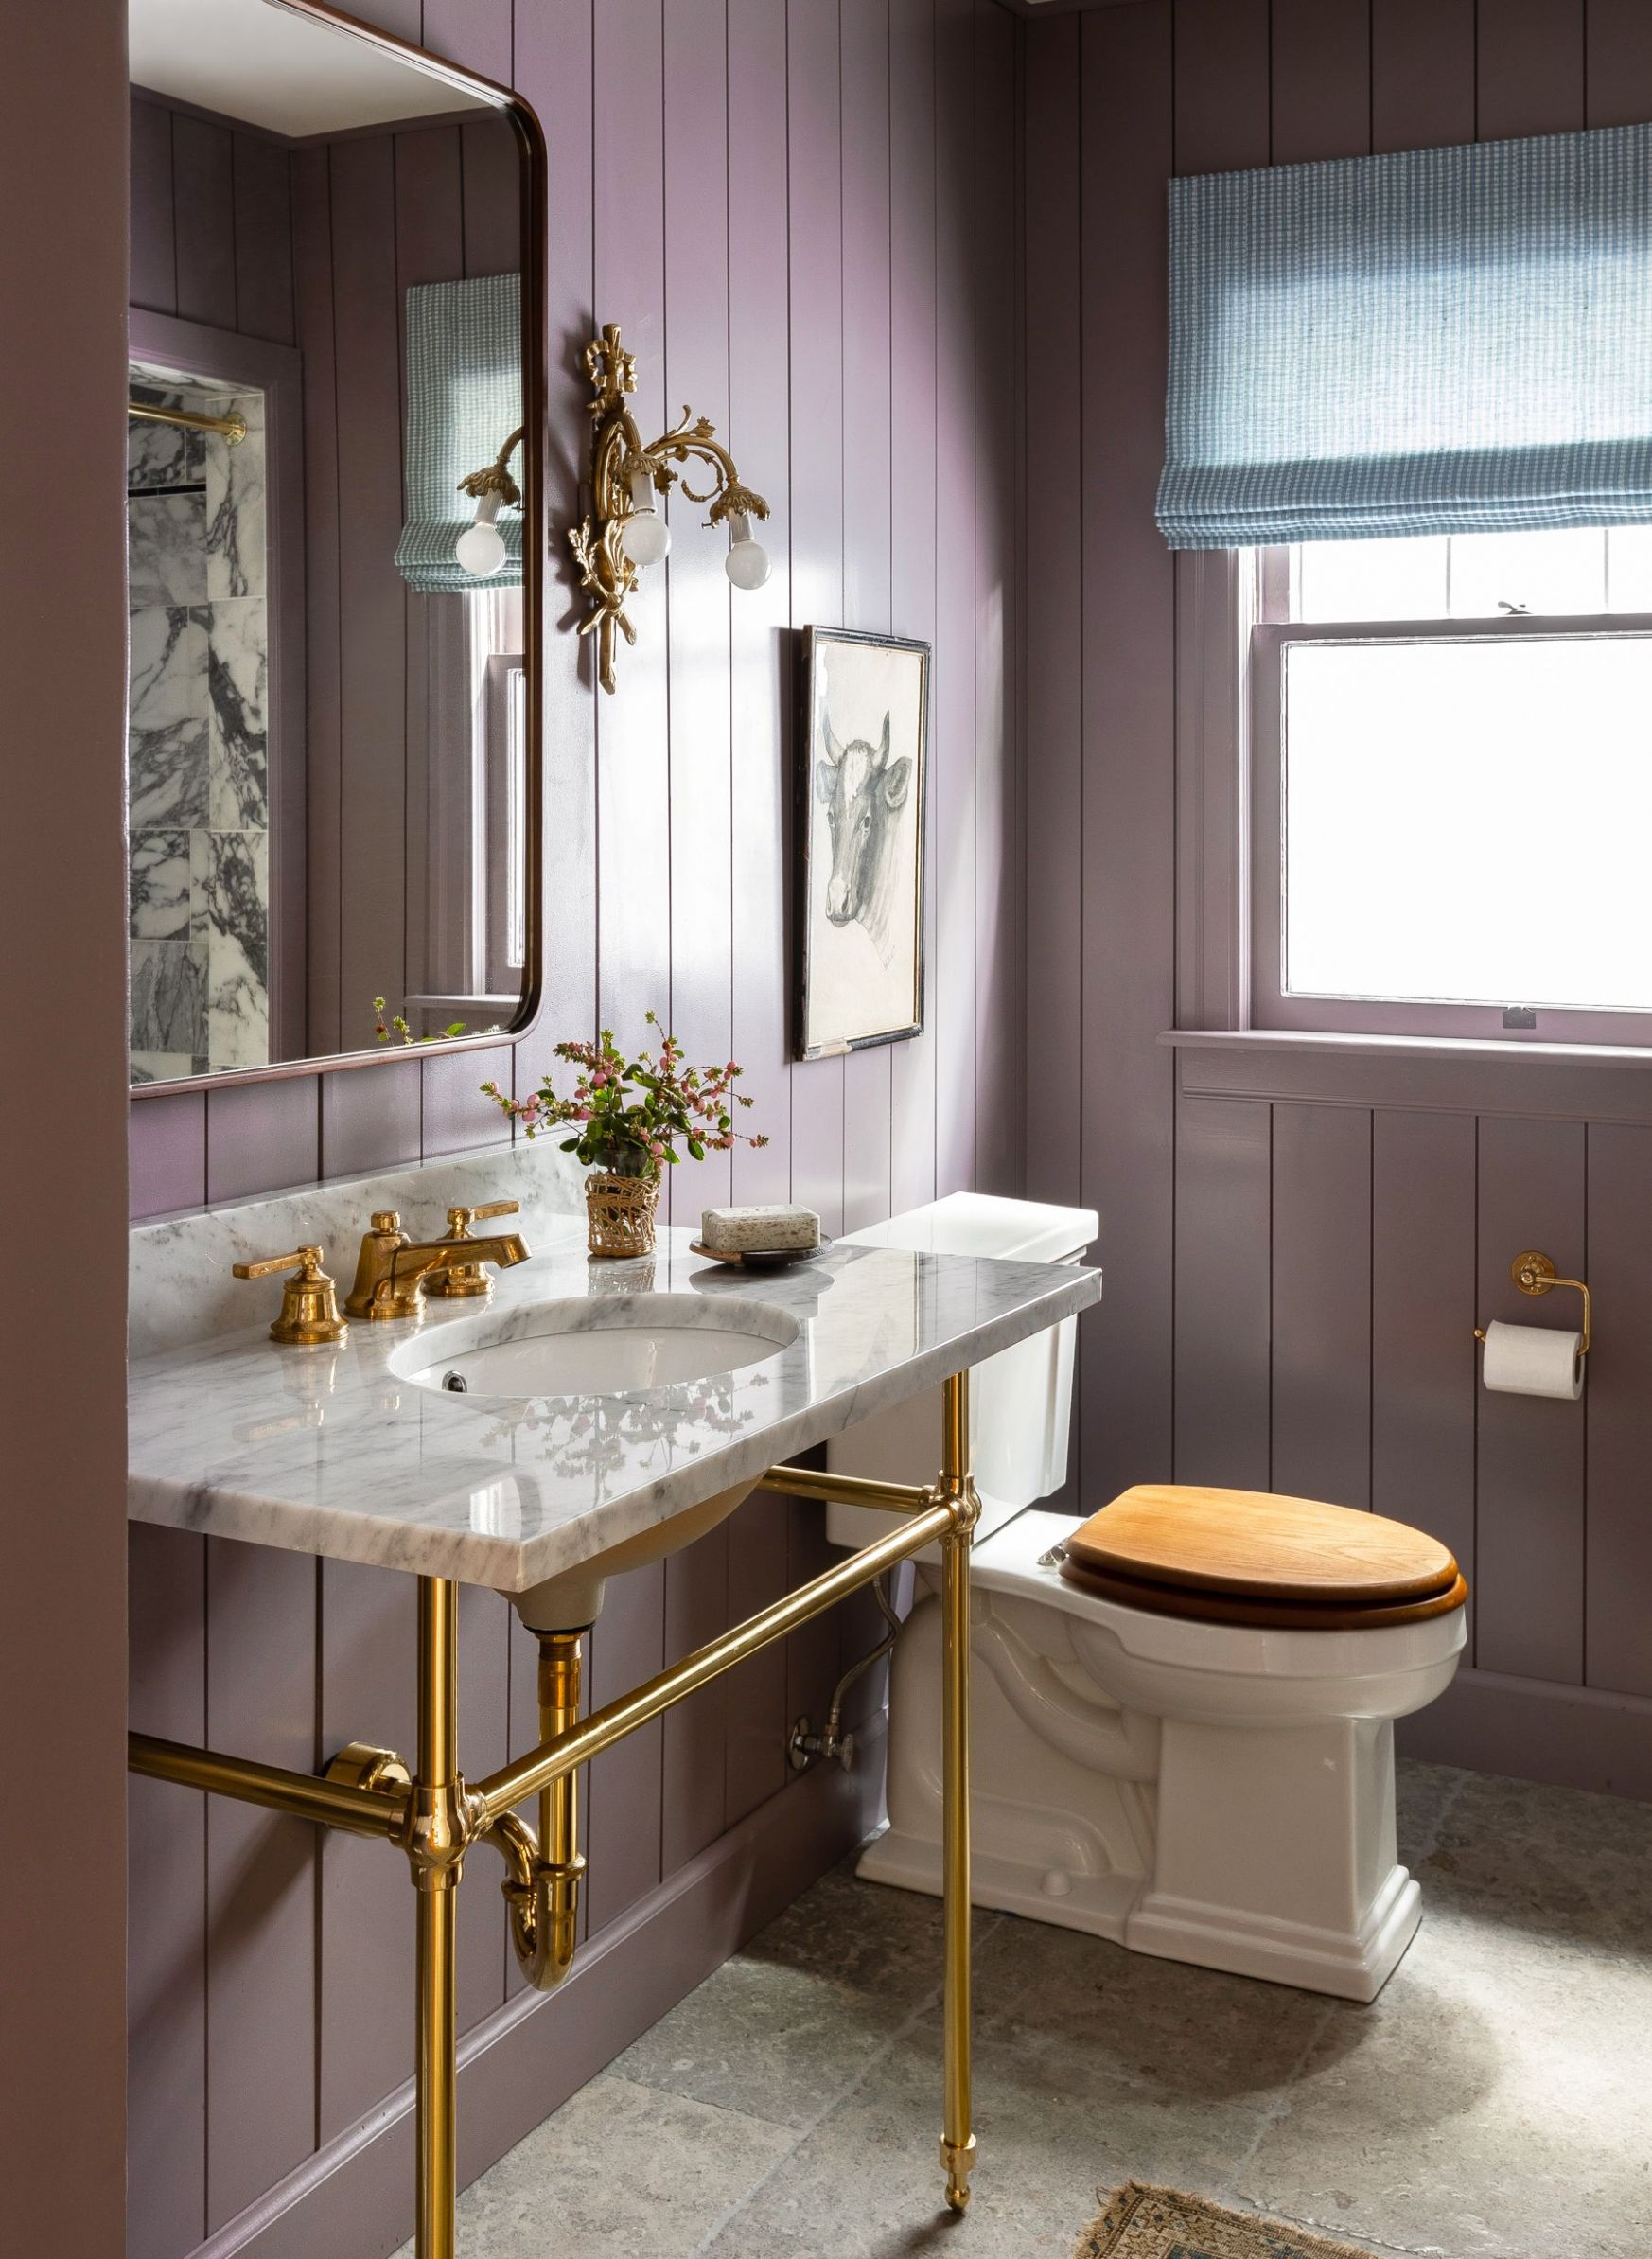 12 Best Bathroom Colors - Top Paint Colors for Bathroom Walls